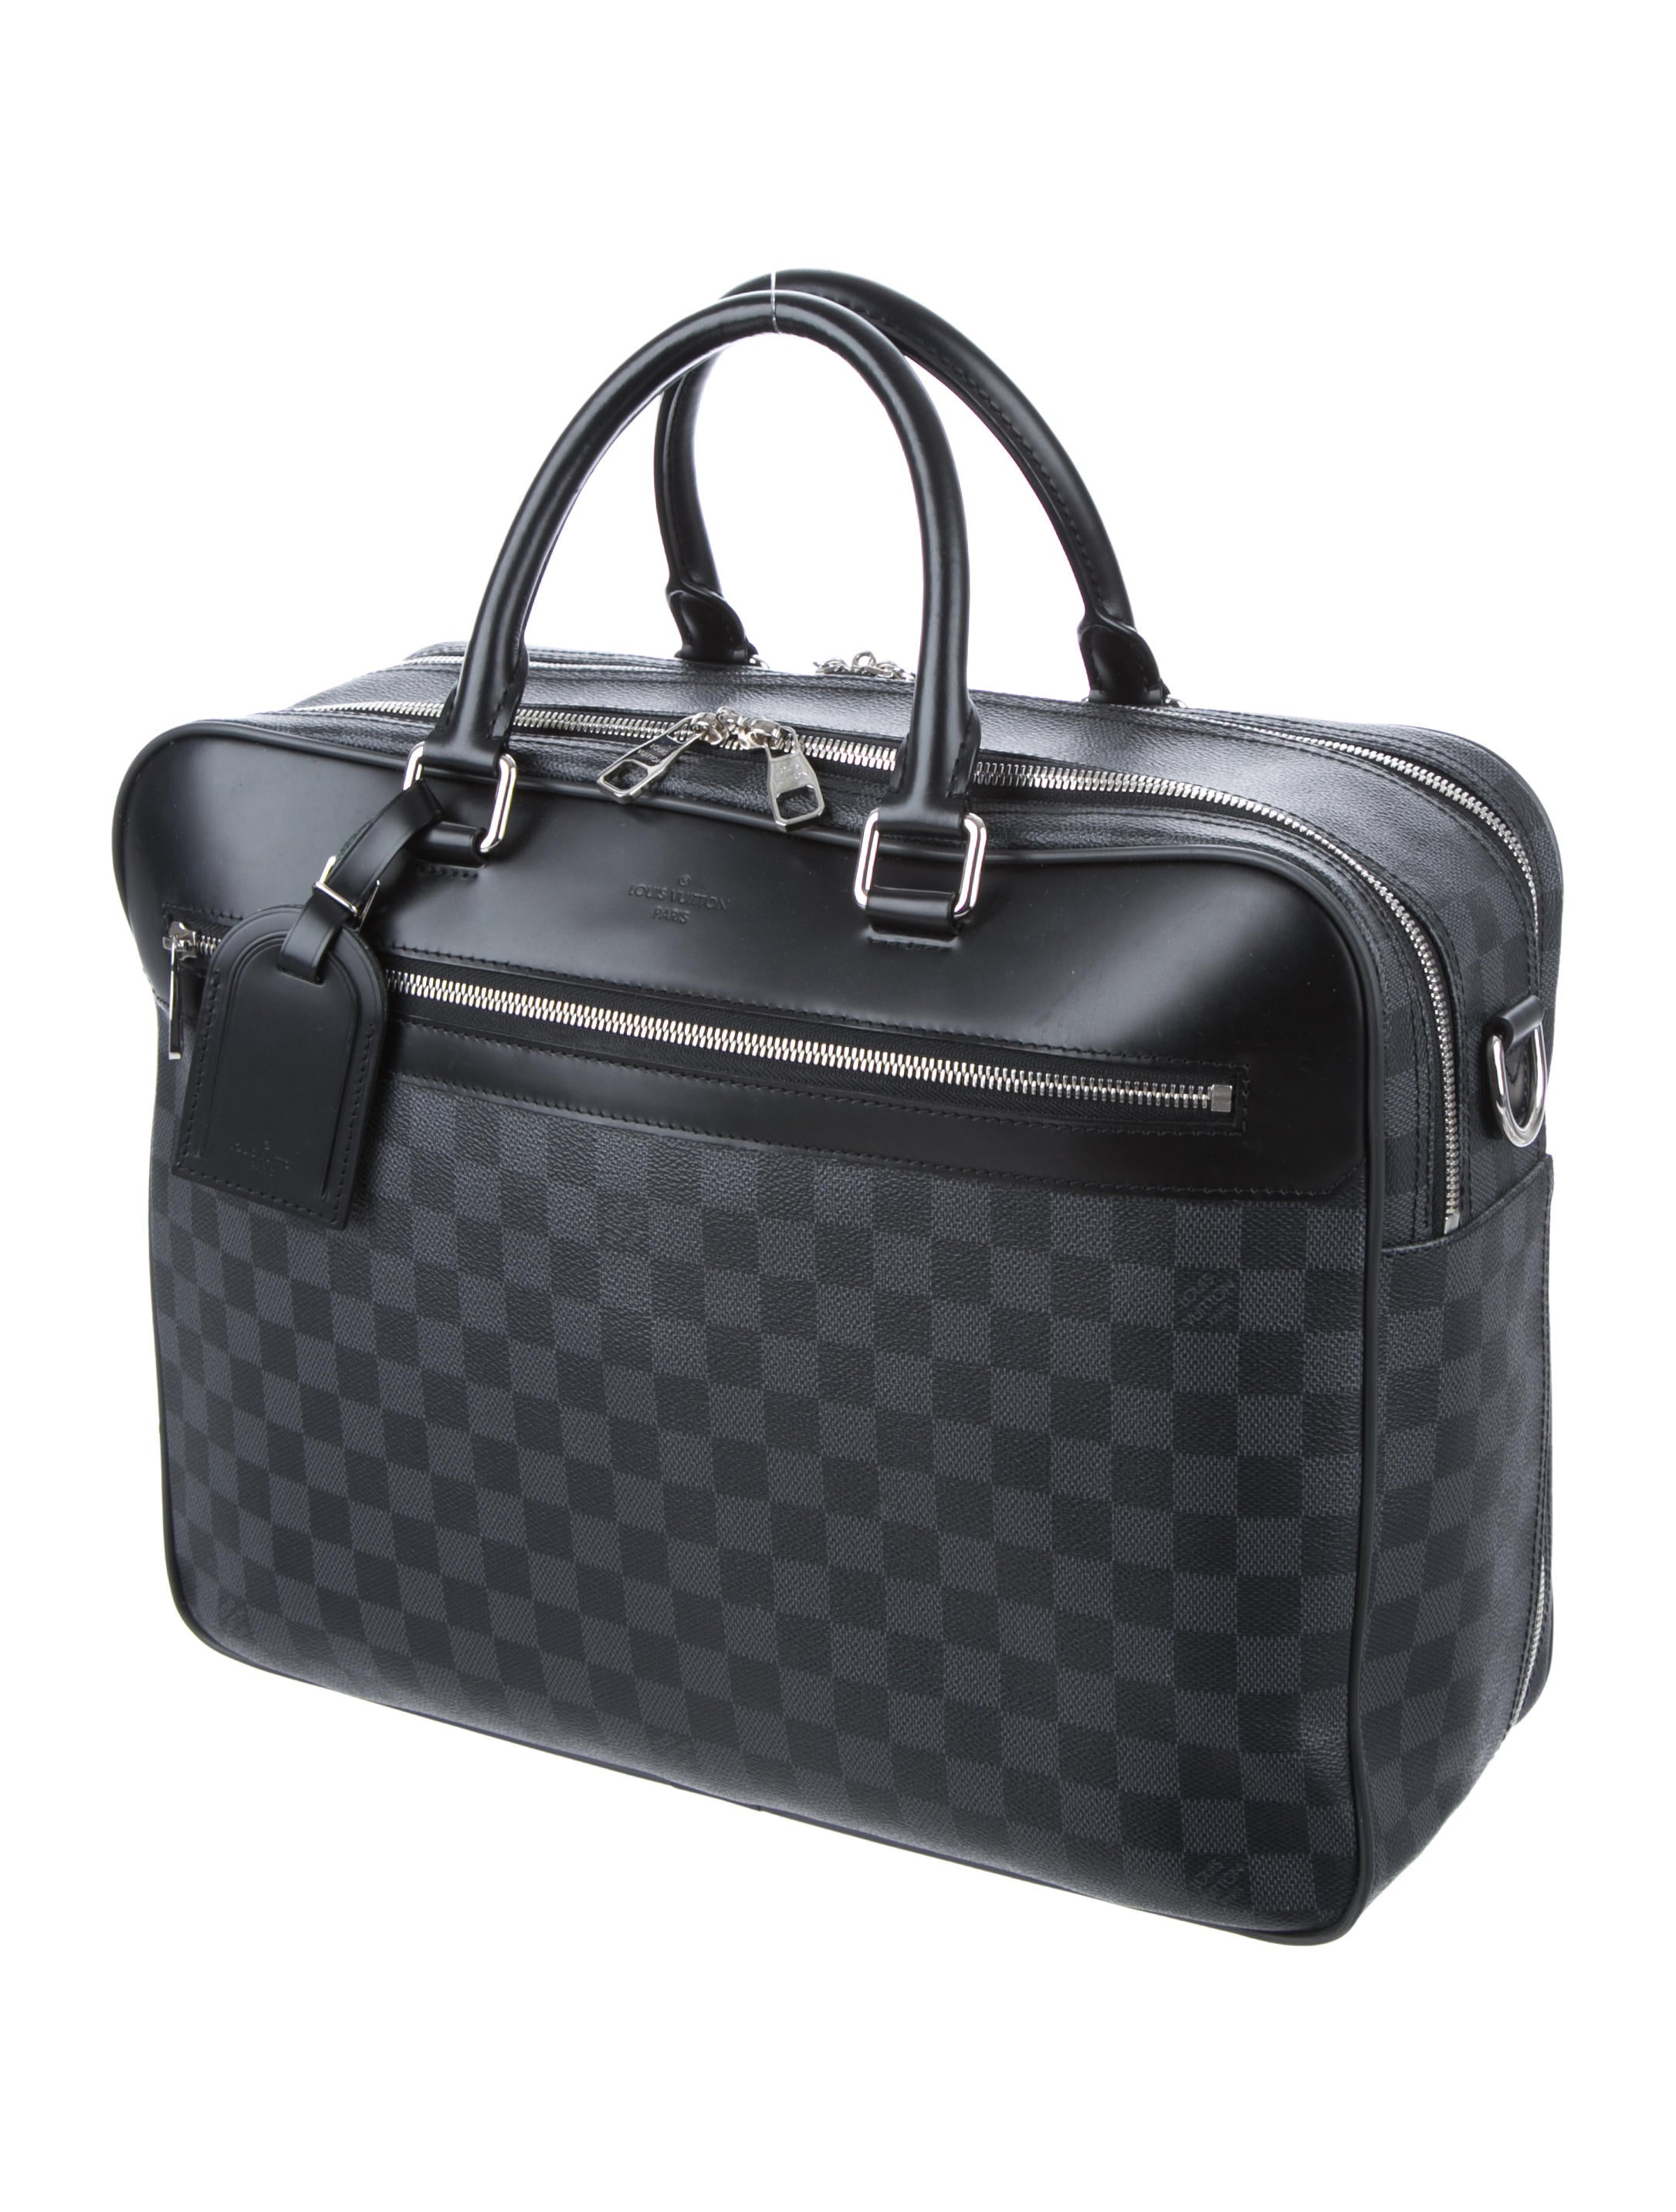 louis vuitton overnight bag. damier graphite overnight louis vuitton bag